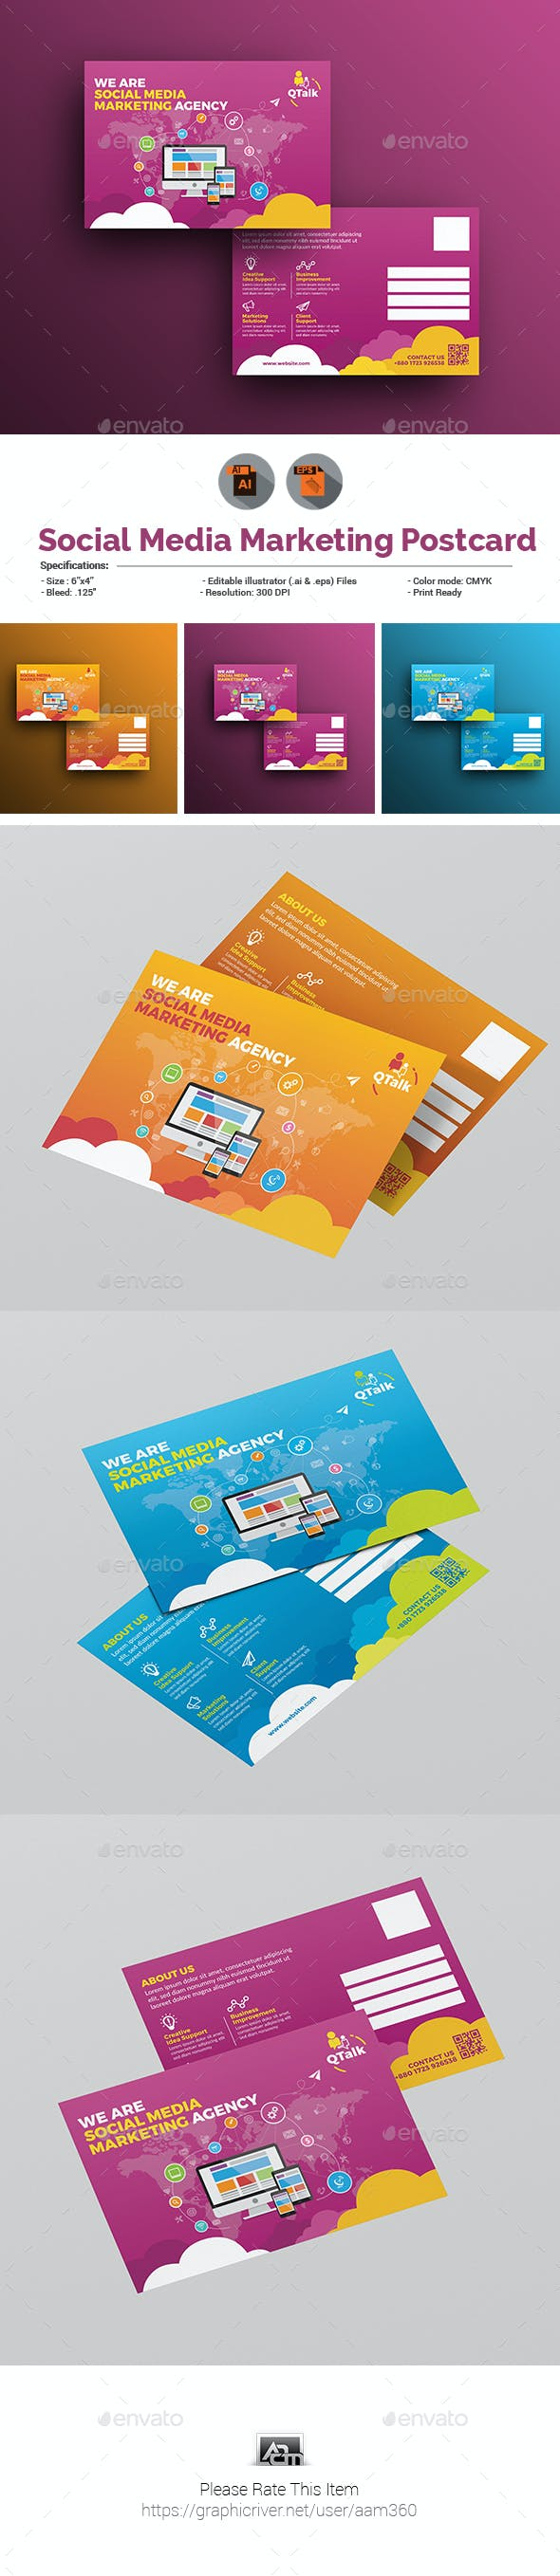 Social Media Marketing Postcard Template By Aam360 Graphicriver